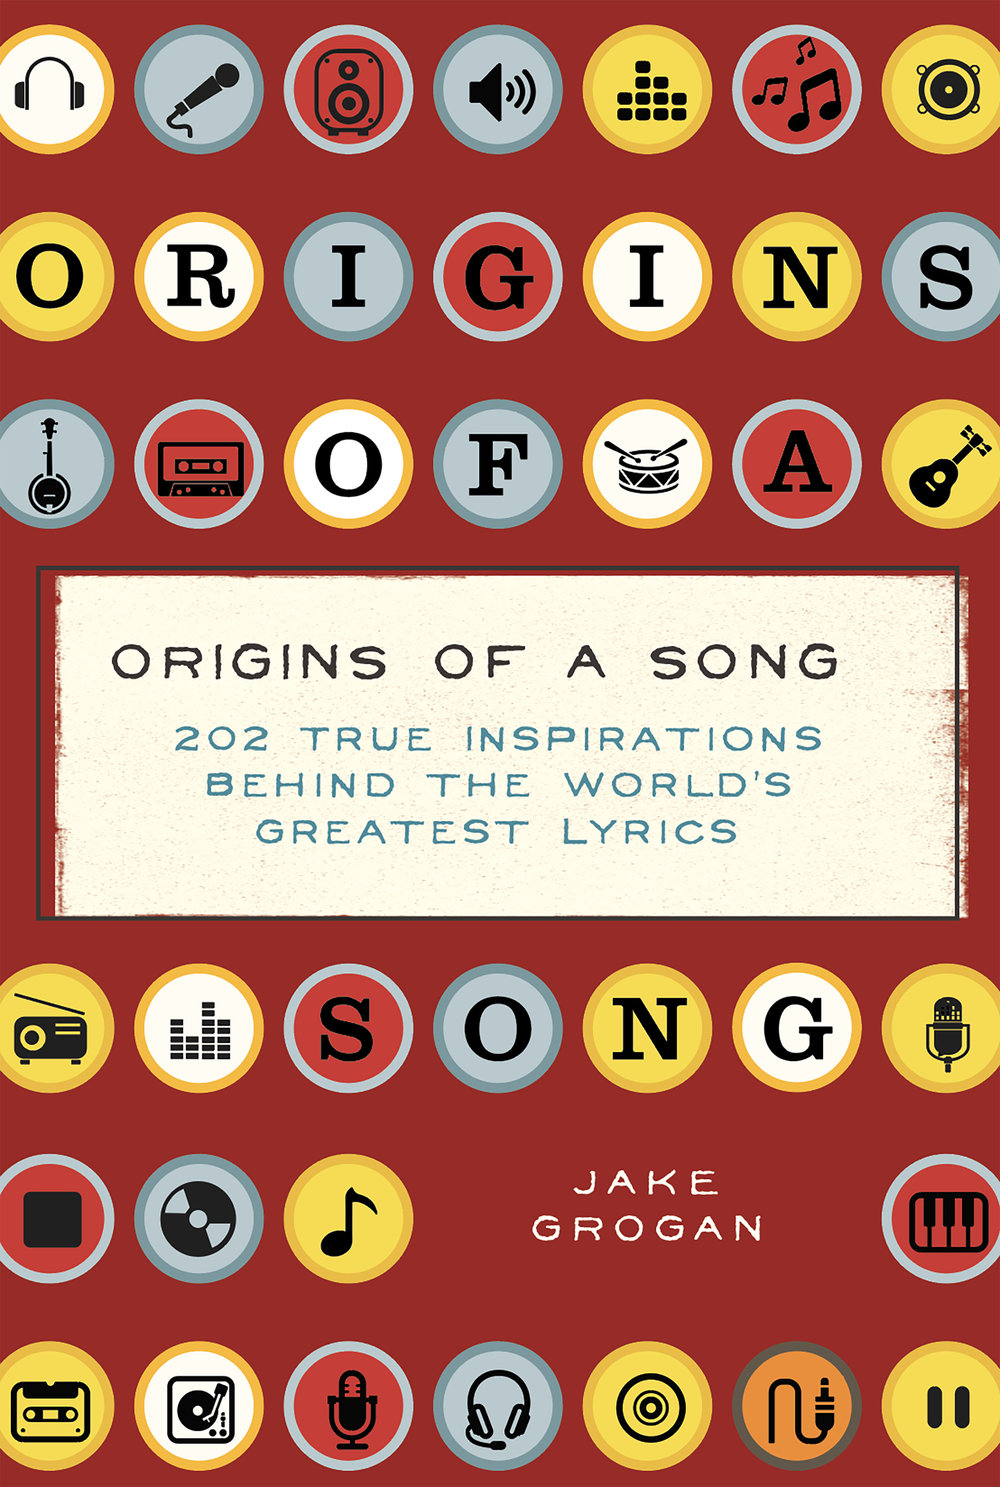 Origins of a Song Cover.jpg